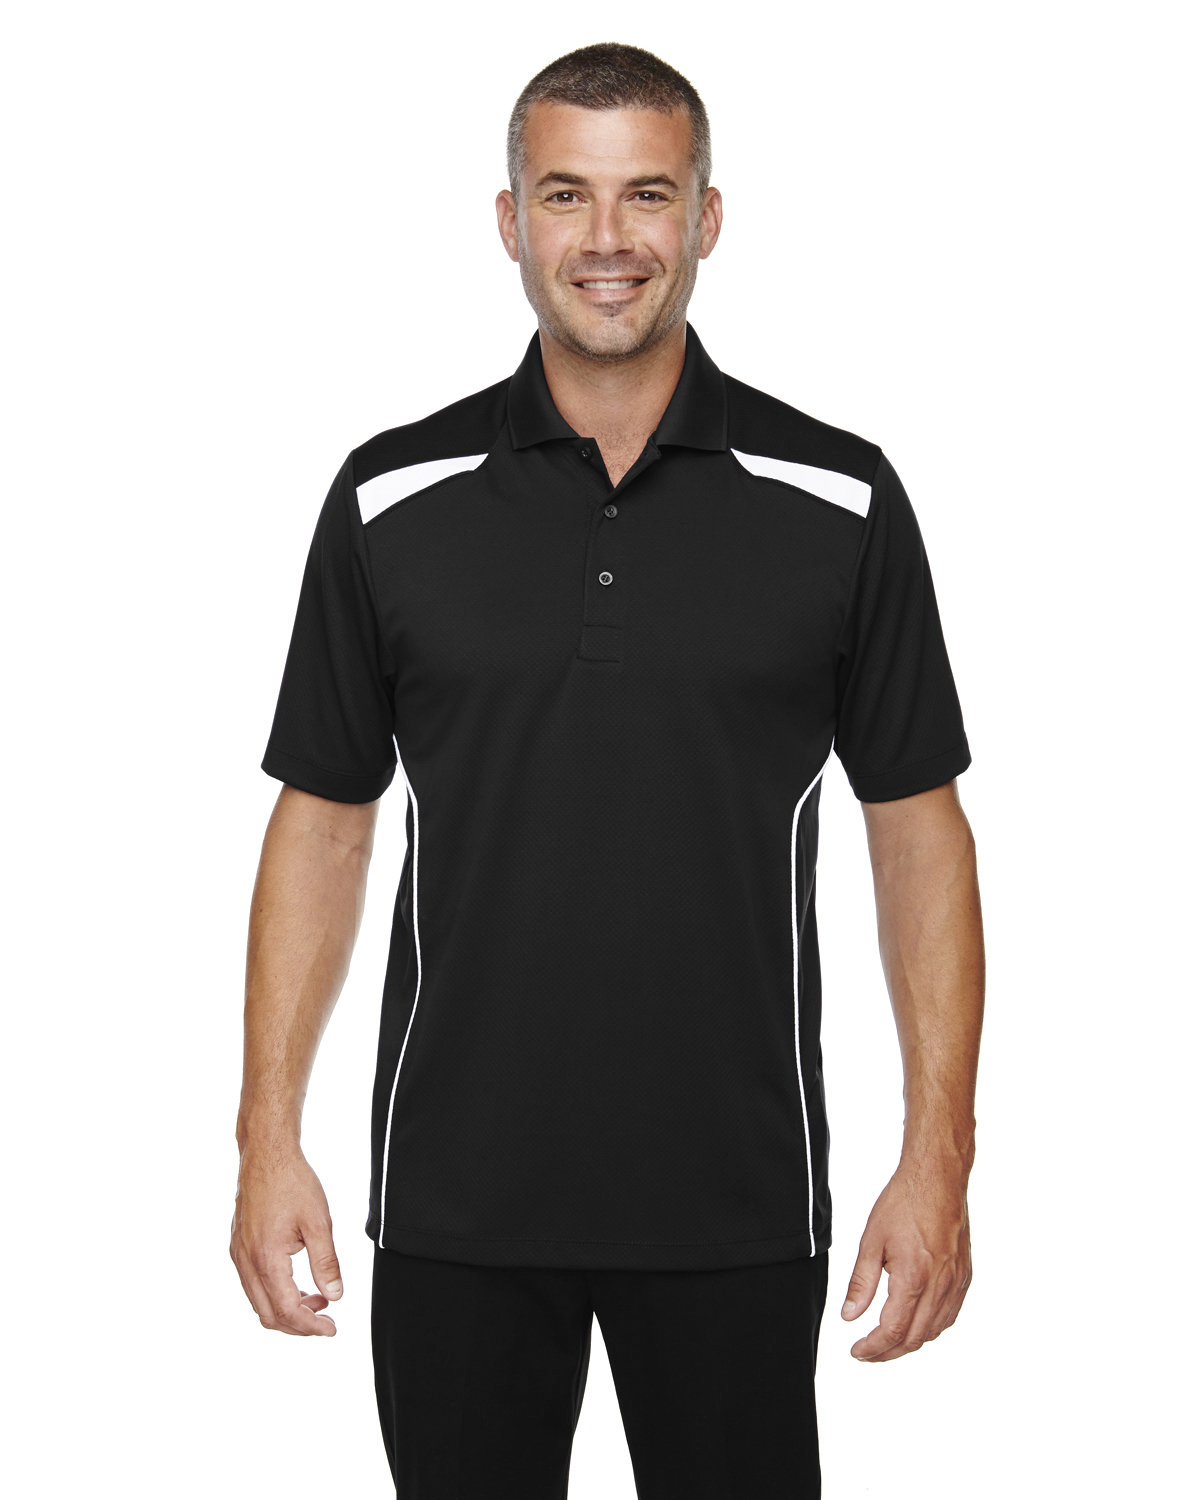 Extreme Men's Eperformance™ Tempo Recycled Polyester Performance Textured Polo BLACK